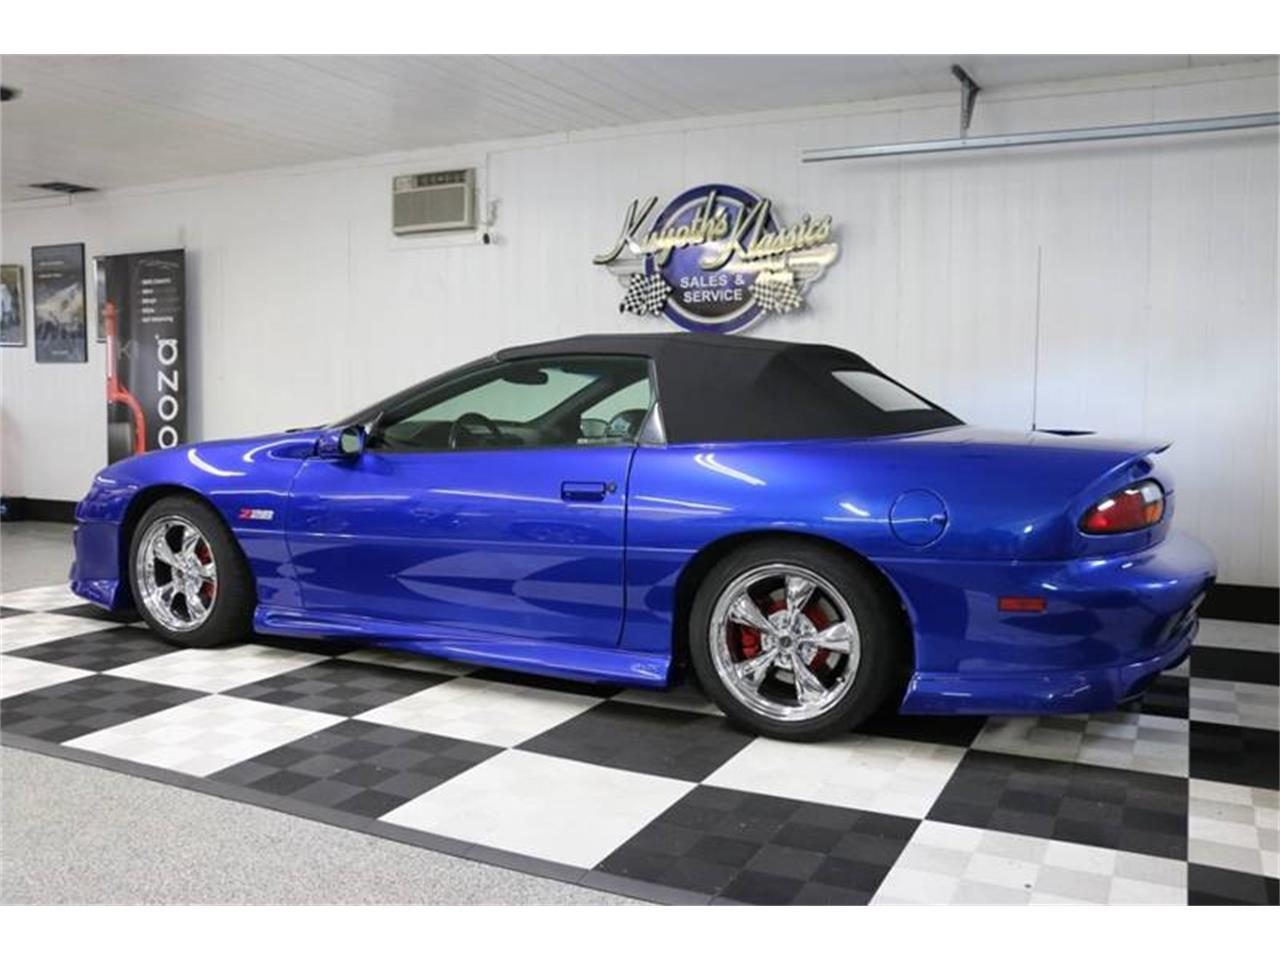 Large Picture of 2002 Chevrolet Camaro - $18,995.00 Offered by Kuyoth's Klassics - QY5C